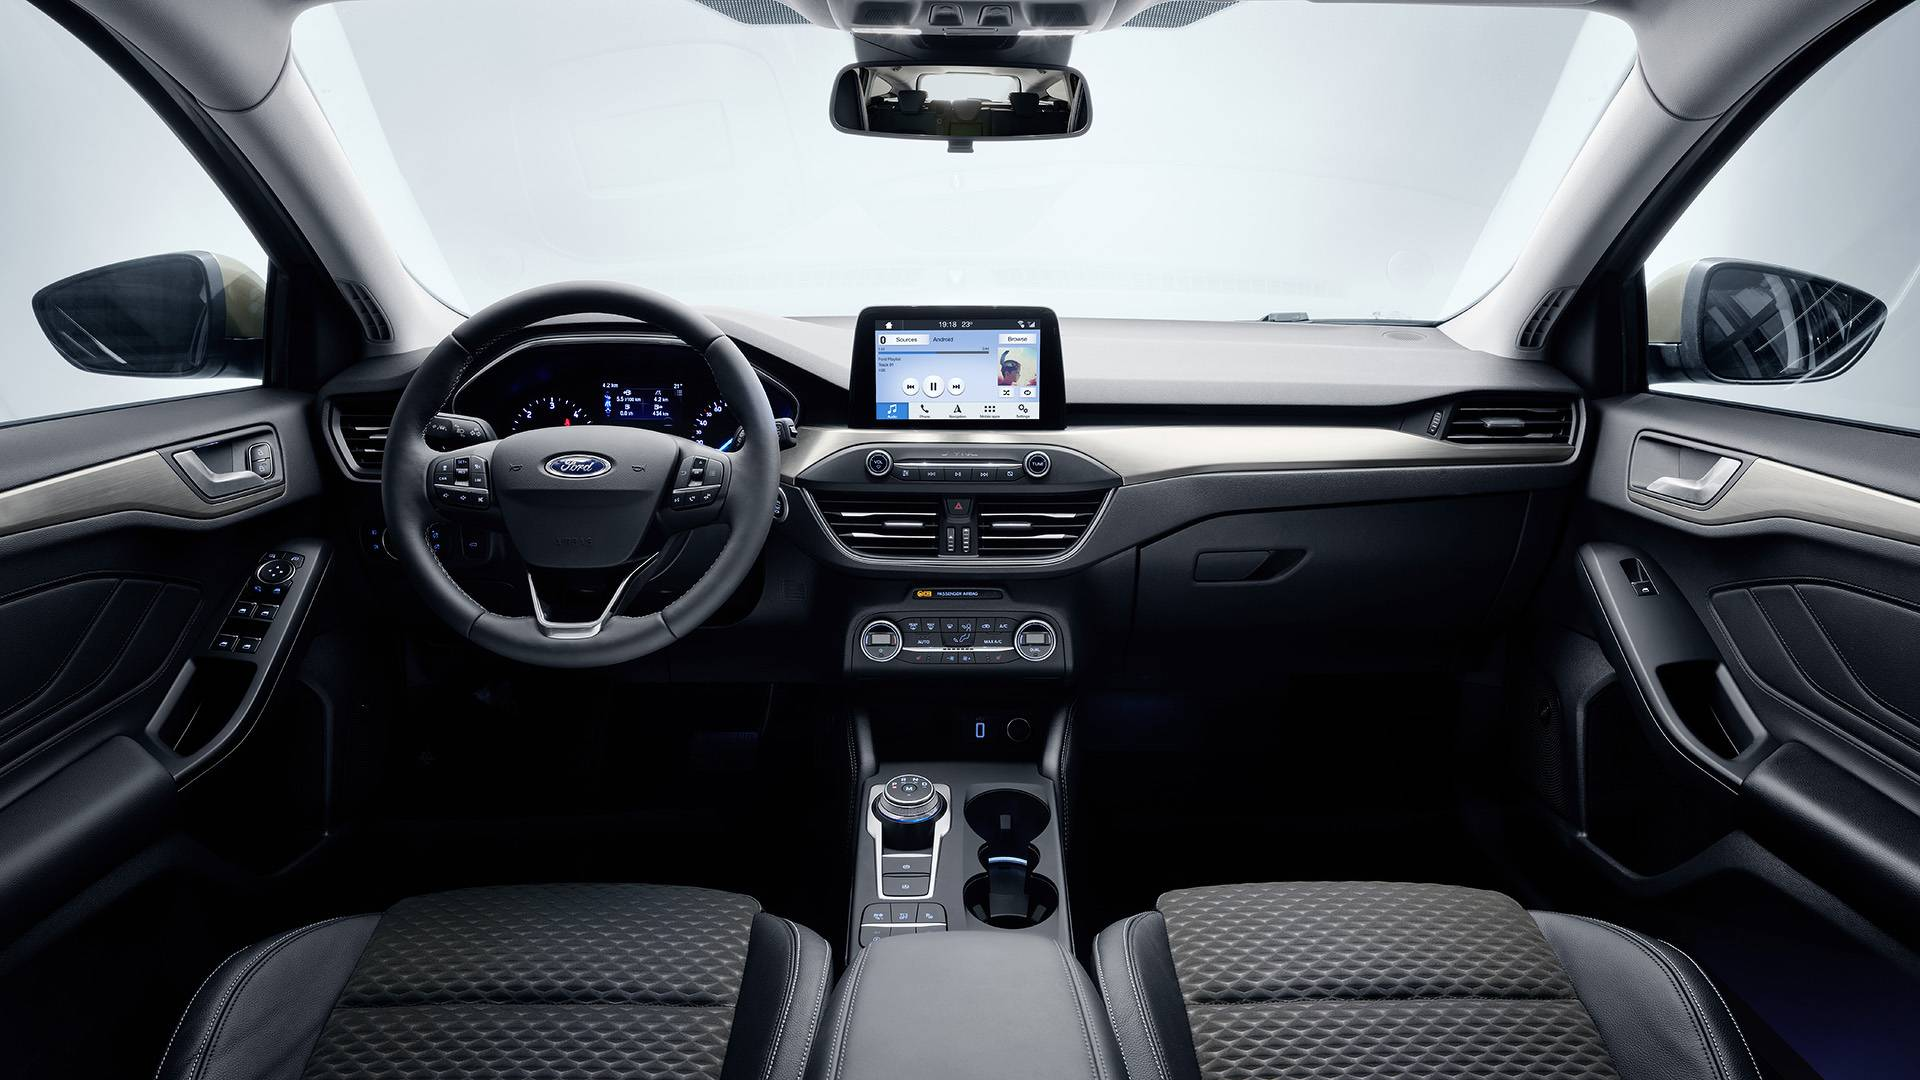 2019 Ford Focus Automatic Interior St Line Top10cars